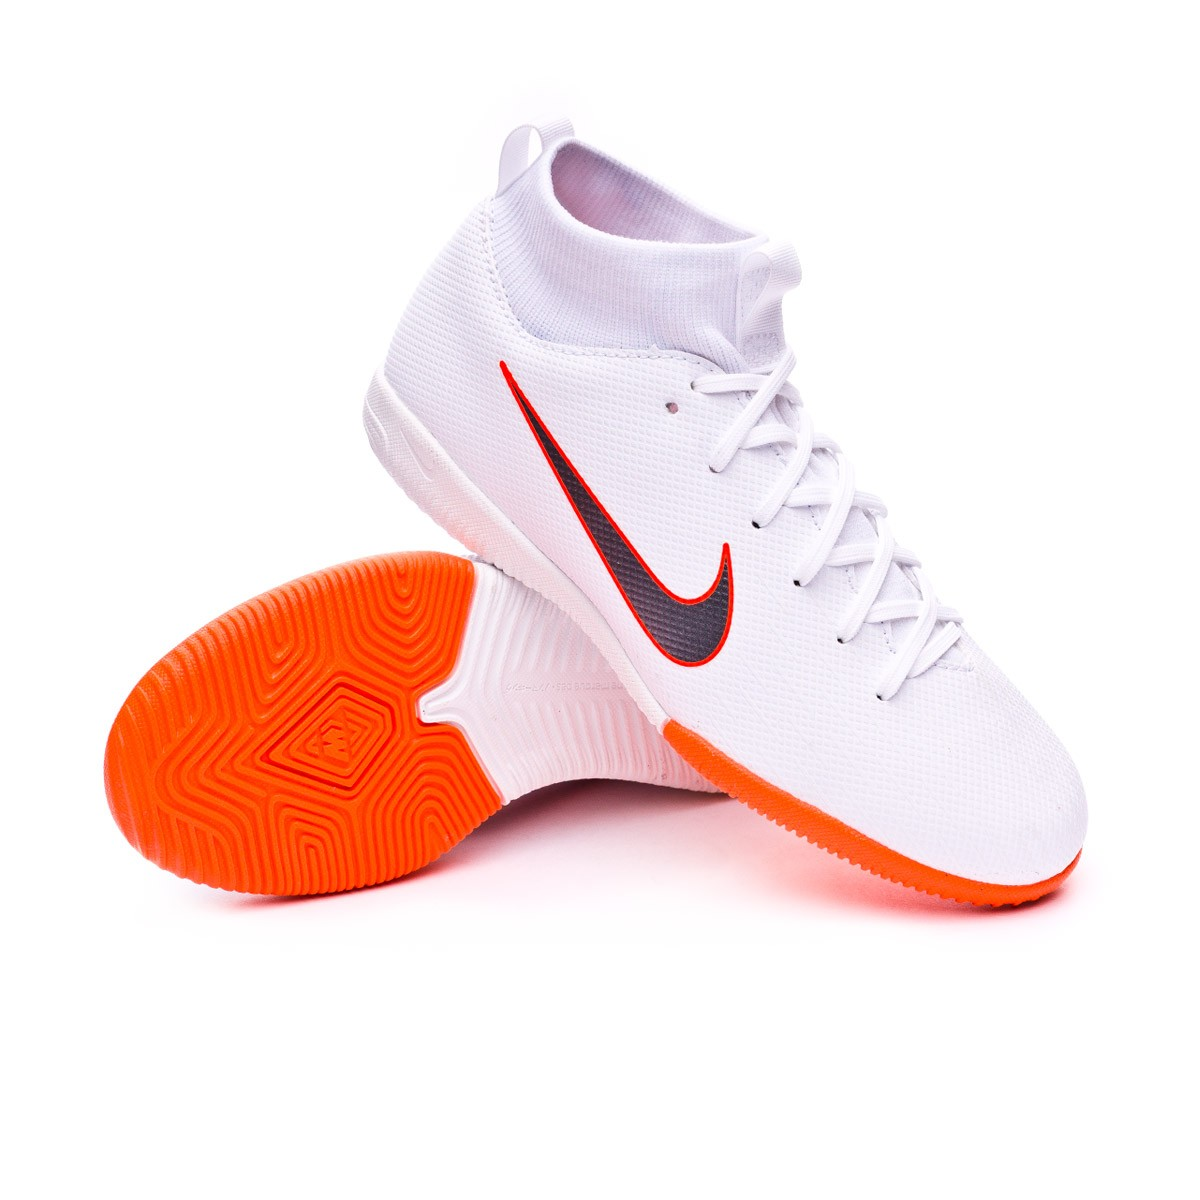 release date performance sportswear presenting Futsal Boot Nike Kids Mercurial SuperflyX VI Academy GS IC White ...